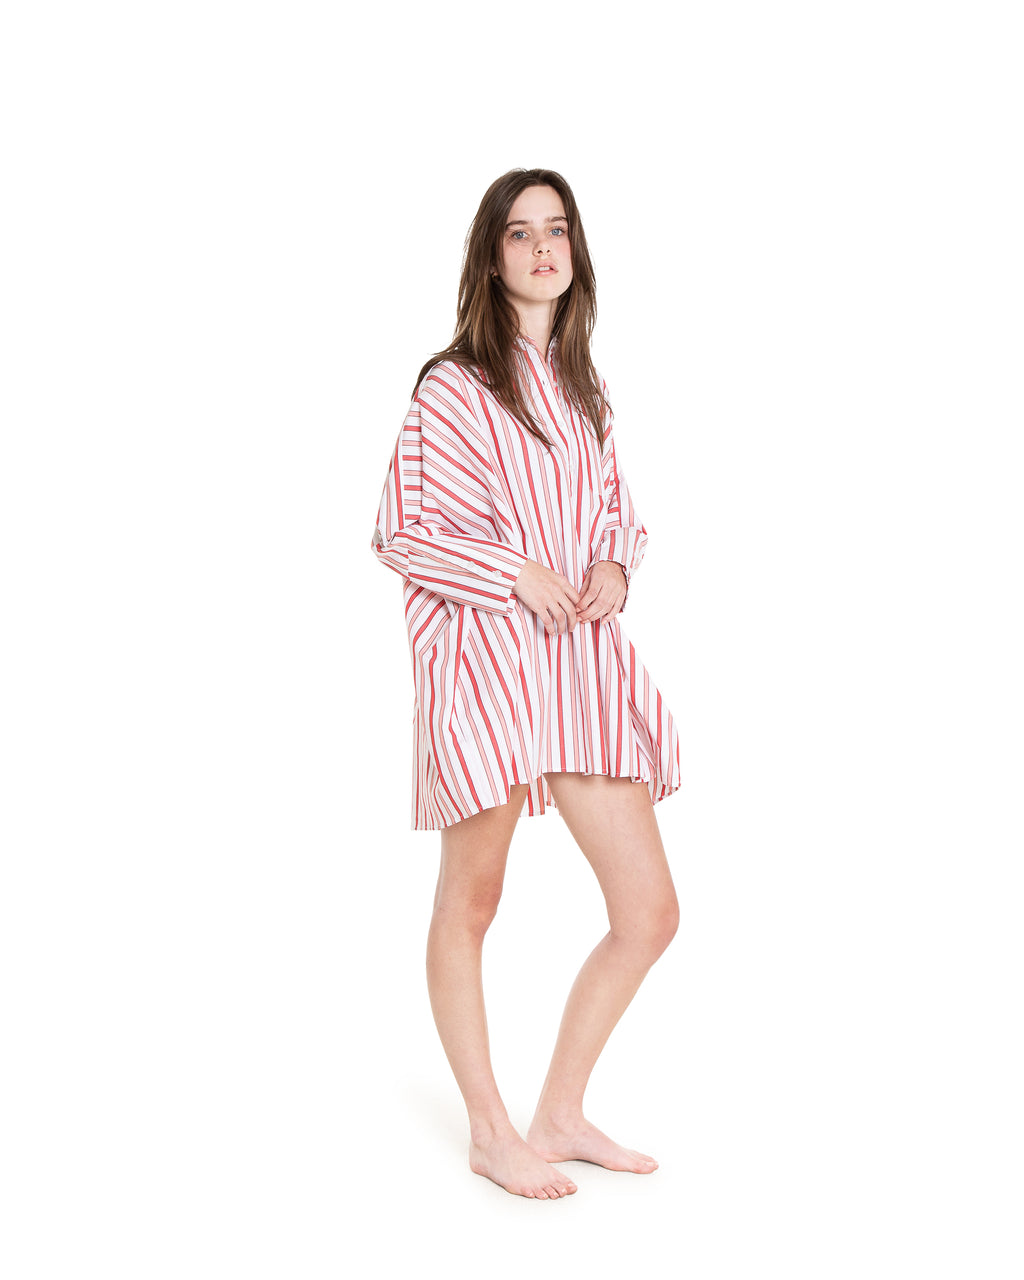 no. 1036 pink & red striped oversized shirt